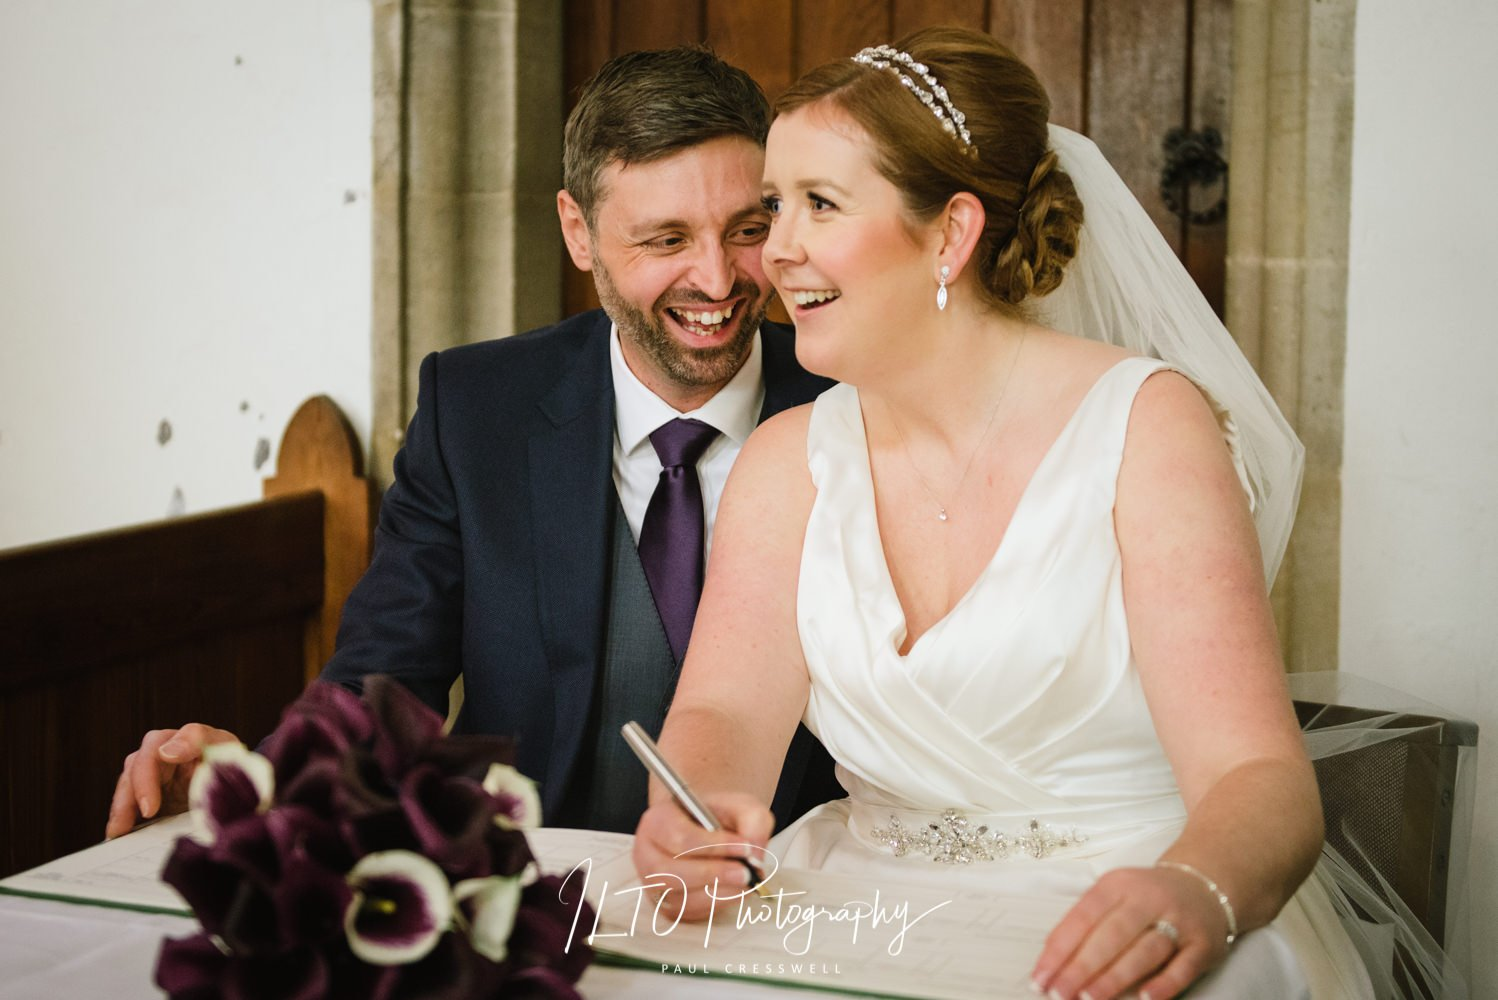 Affordable natural wedding photography west yorkshire